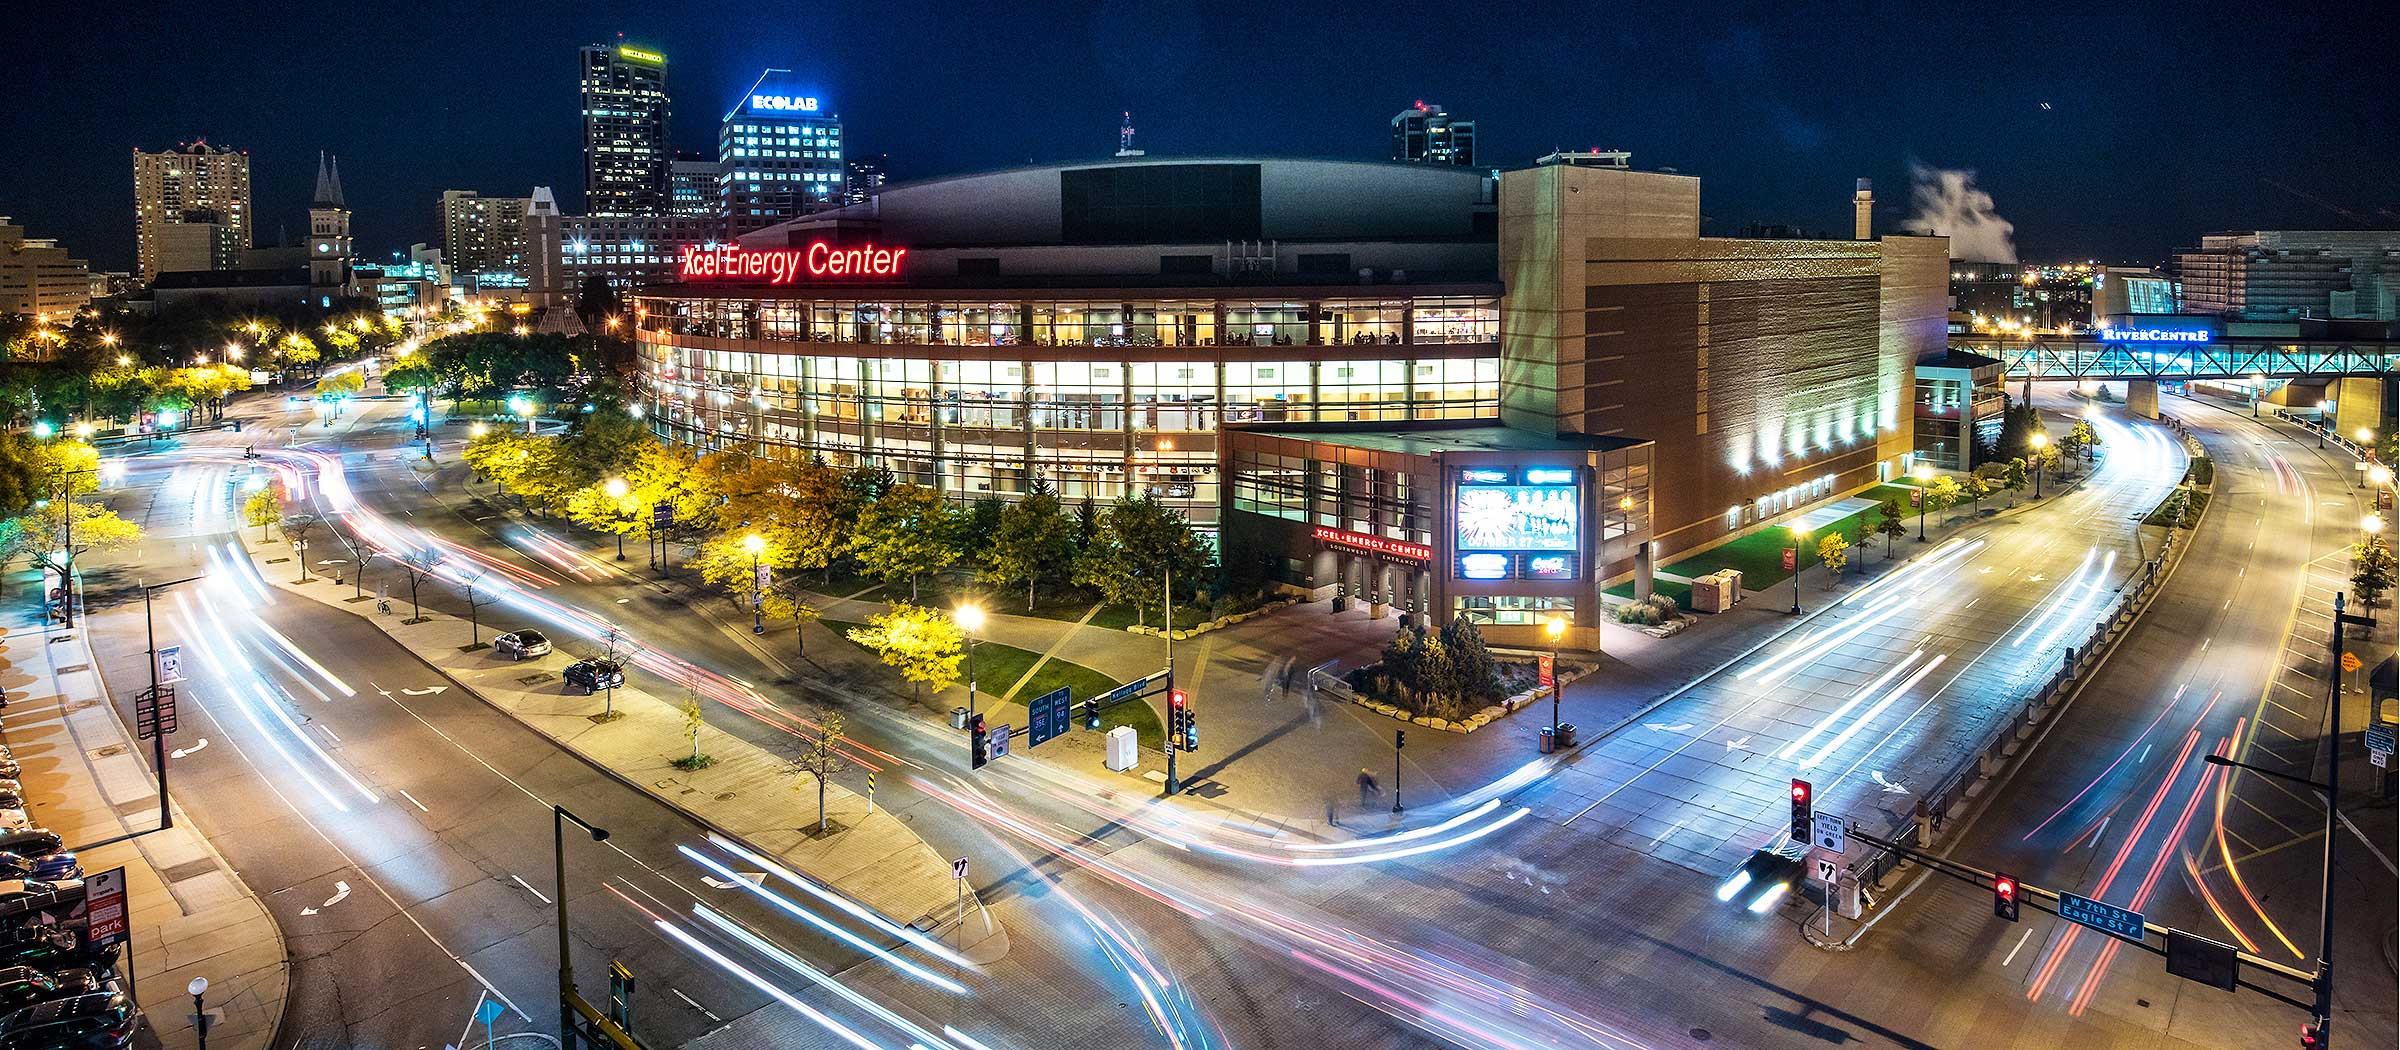 Hotels Near Xcel Center Minneapolis